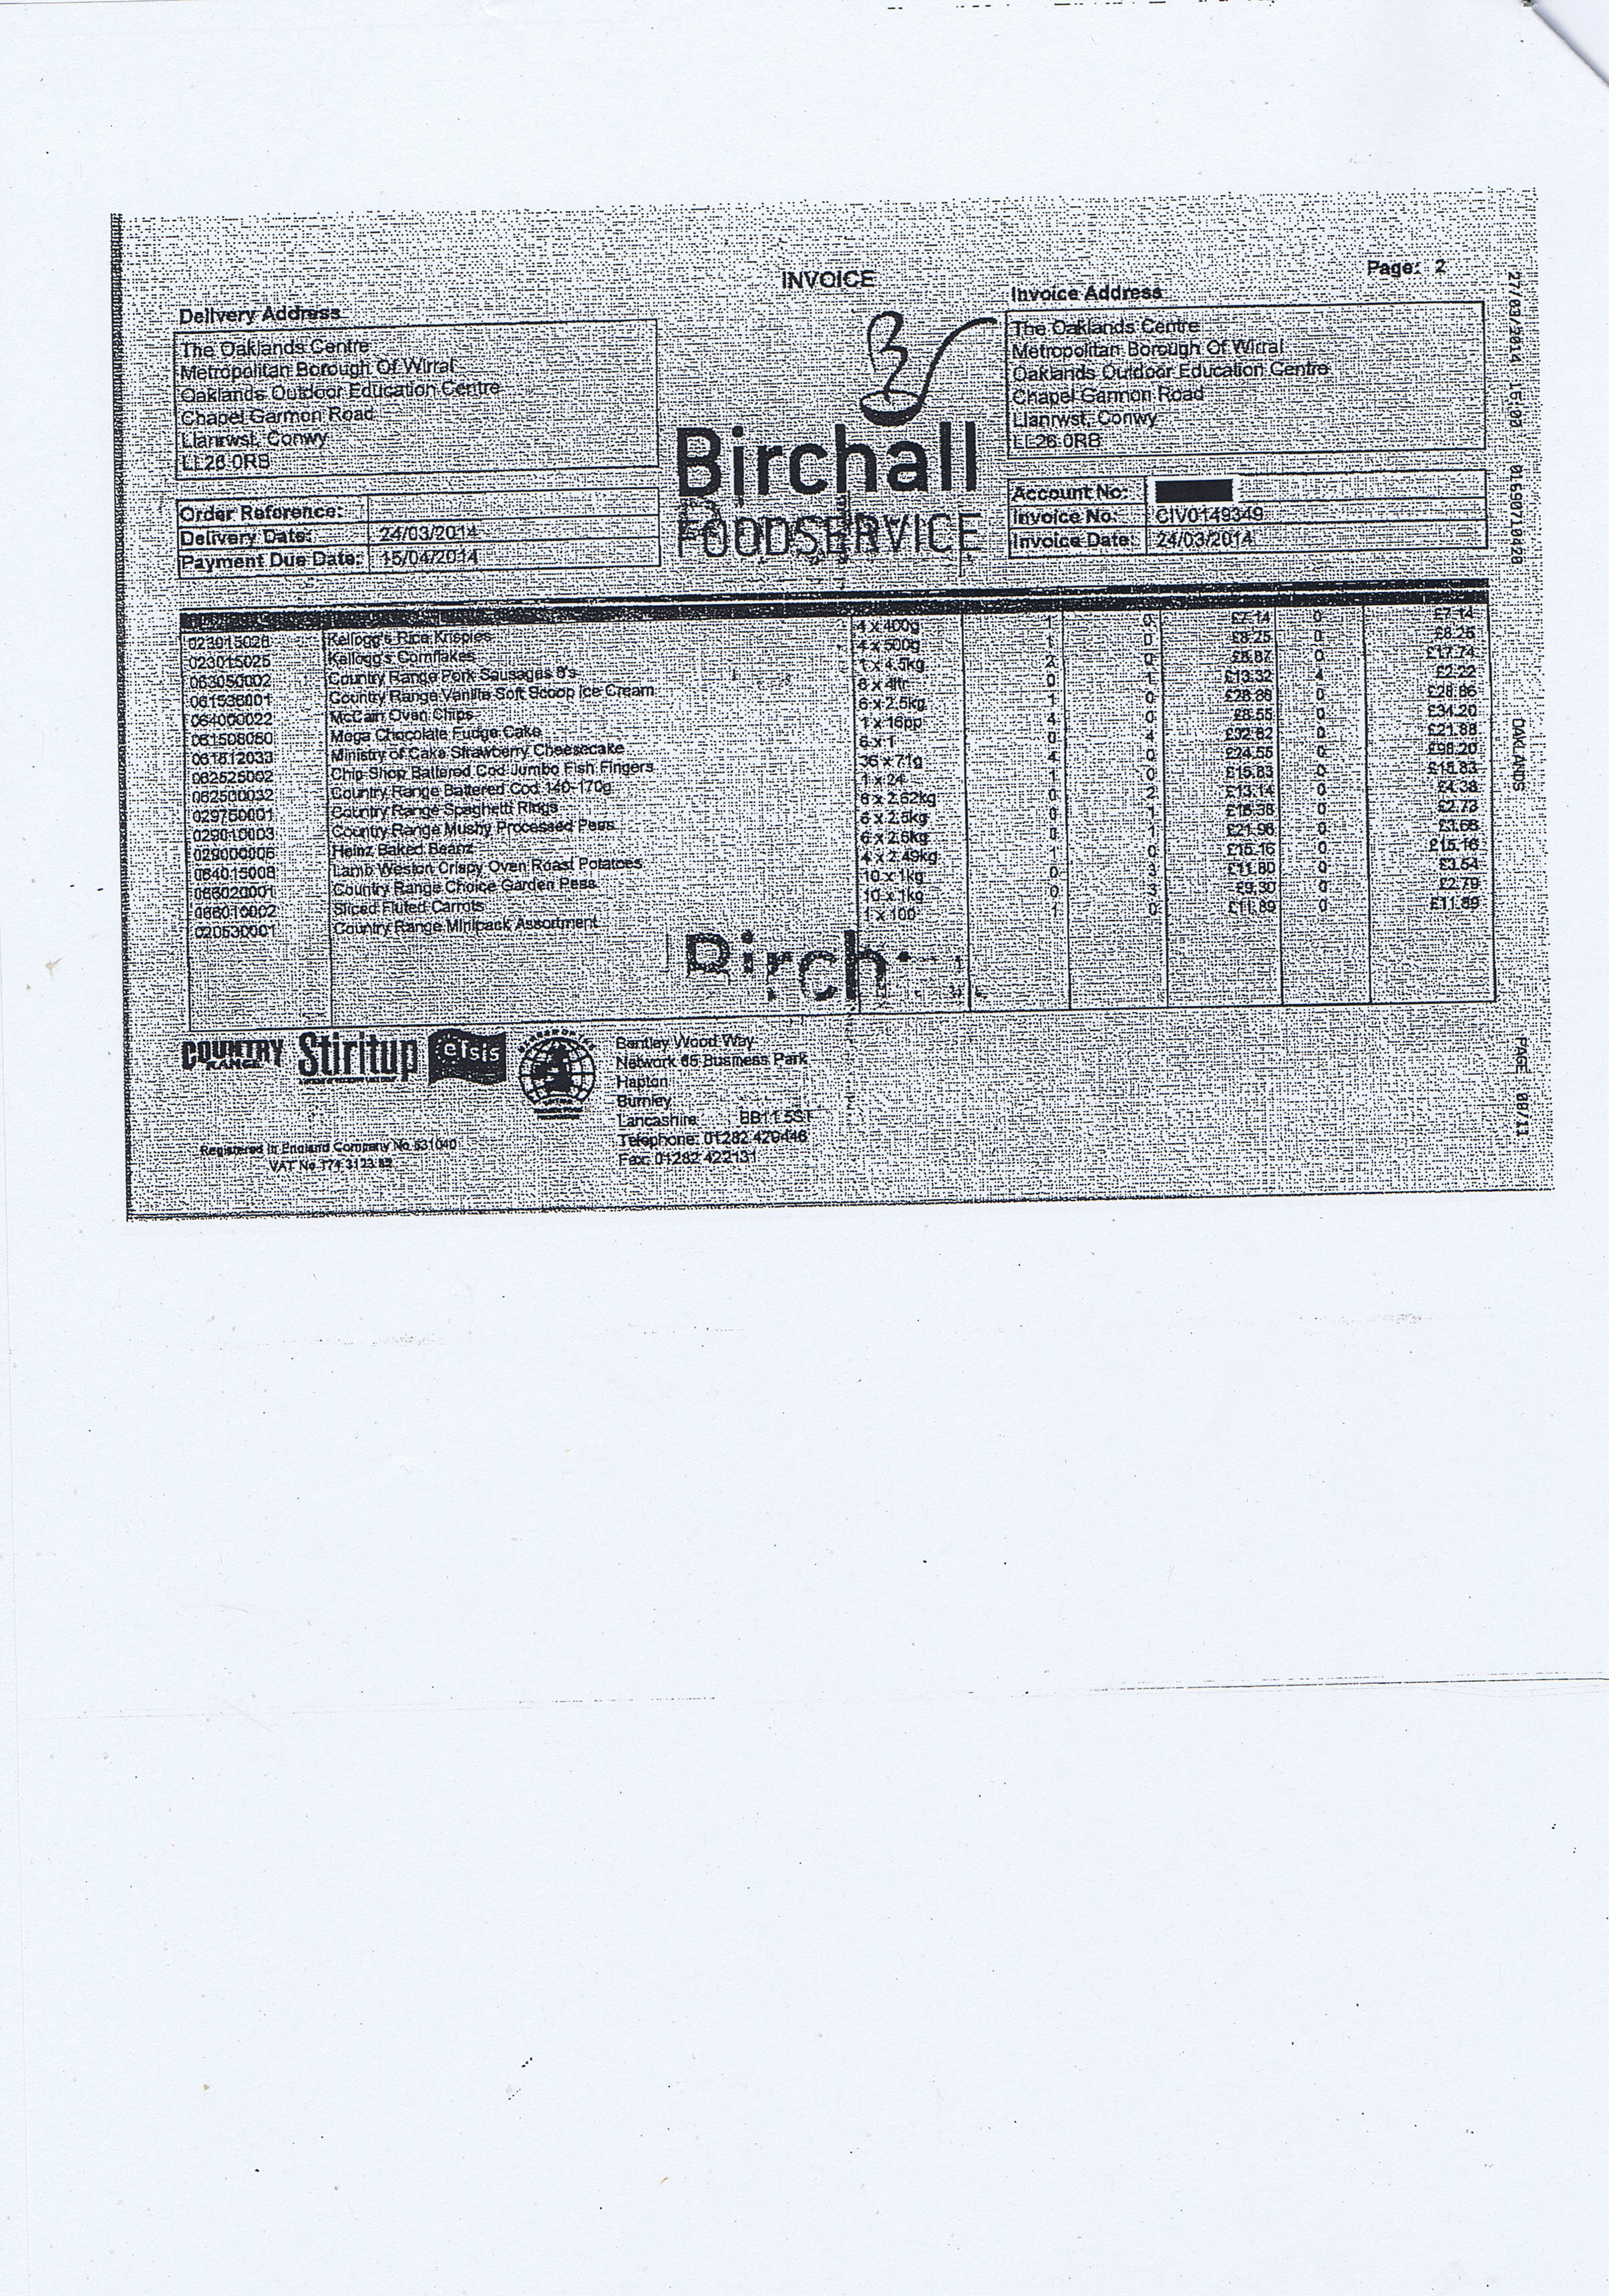 Wirral Council invoice 75 Birchall Foodservice £568.94 page 2 of 3